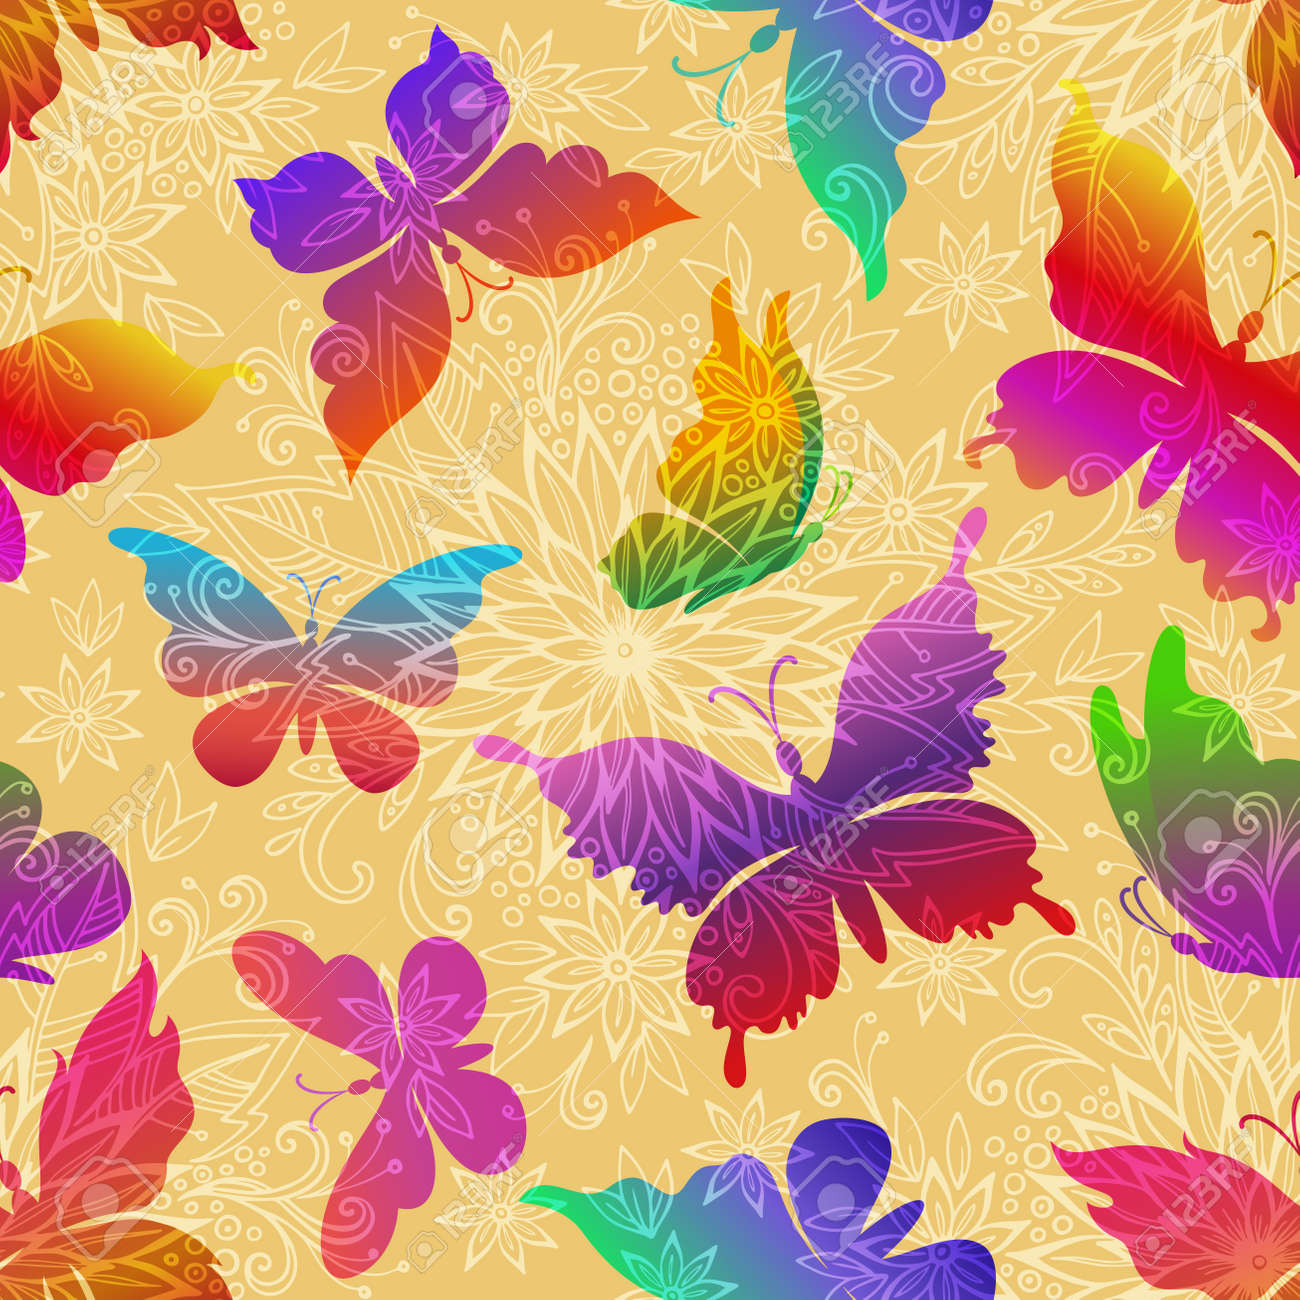 Seamless Pattern, Exotic Colorful Butterflies Silhouettes on Tile Background with Symbolic Flowers Contours. Vector - 147263084